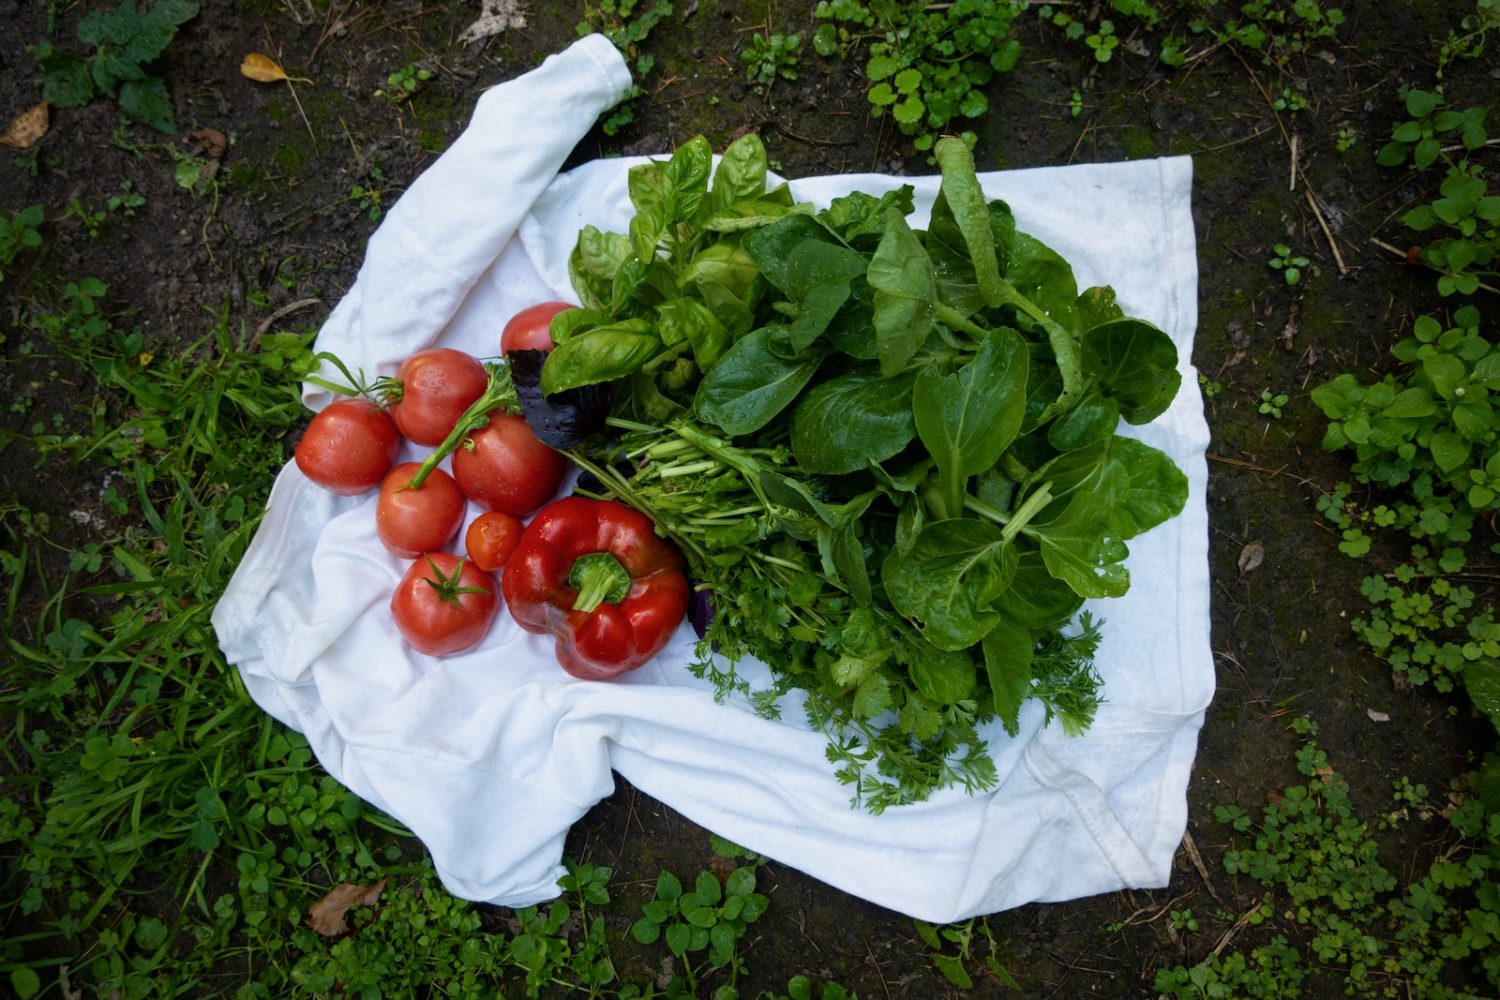 More produce from the garden.